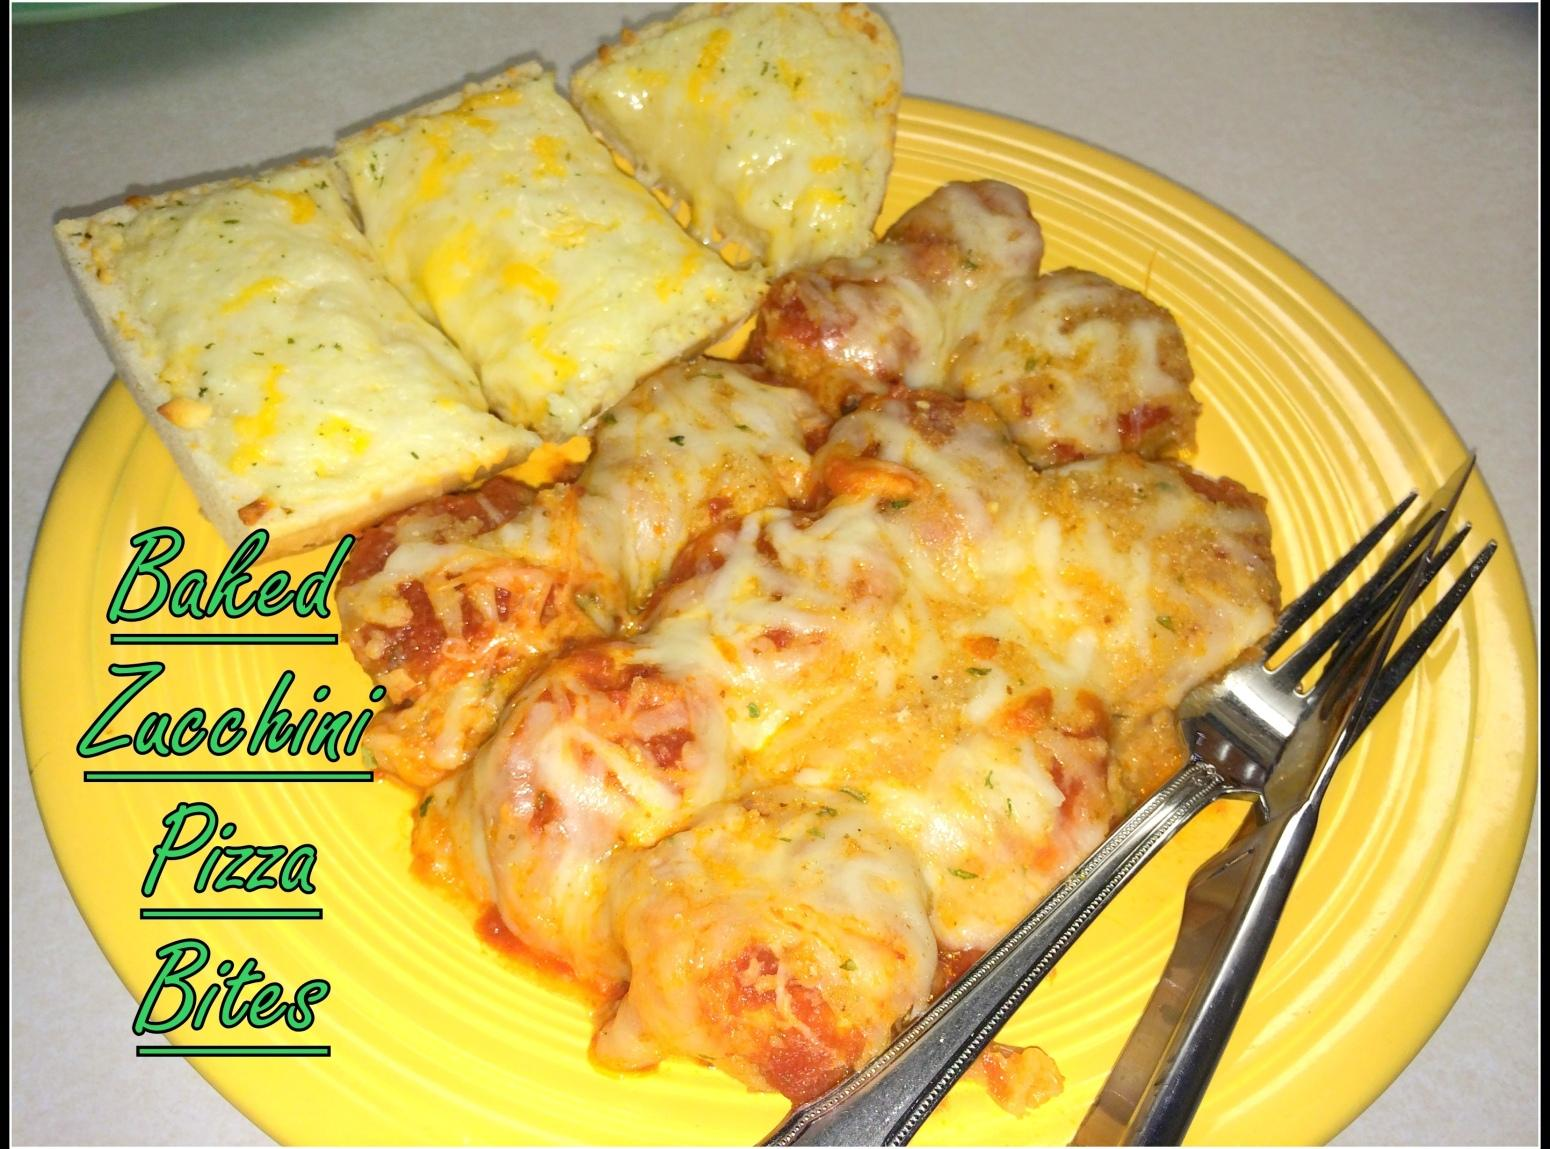 Baked Zucchini Pizza Bites Recipe   Just A Pinch Recipes